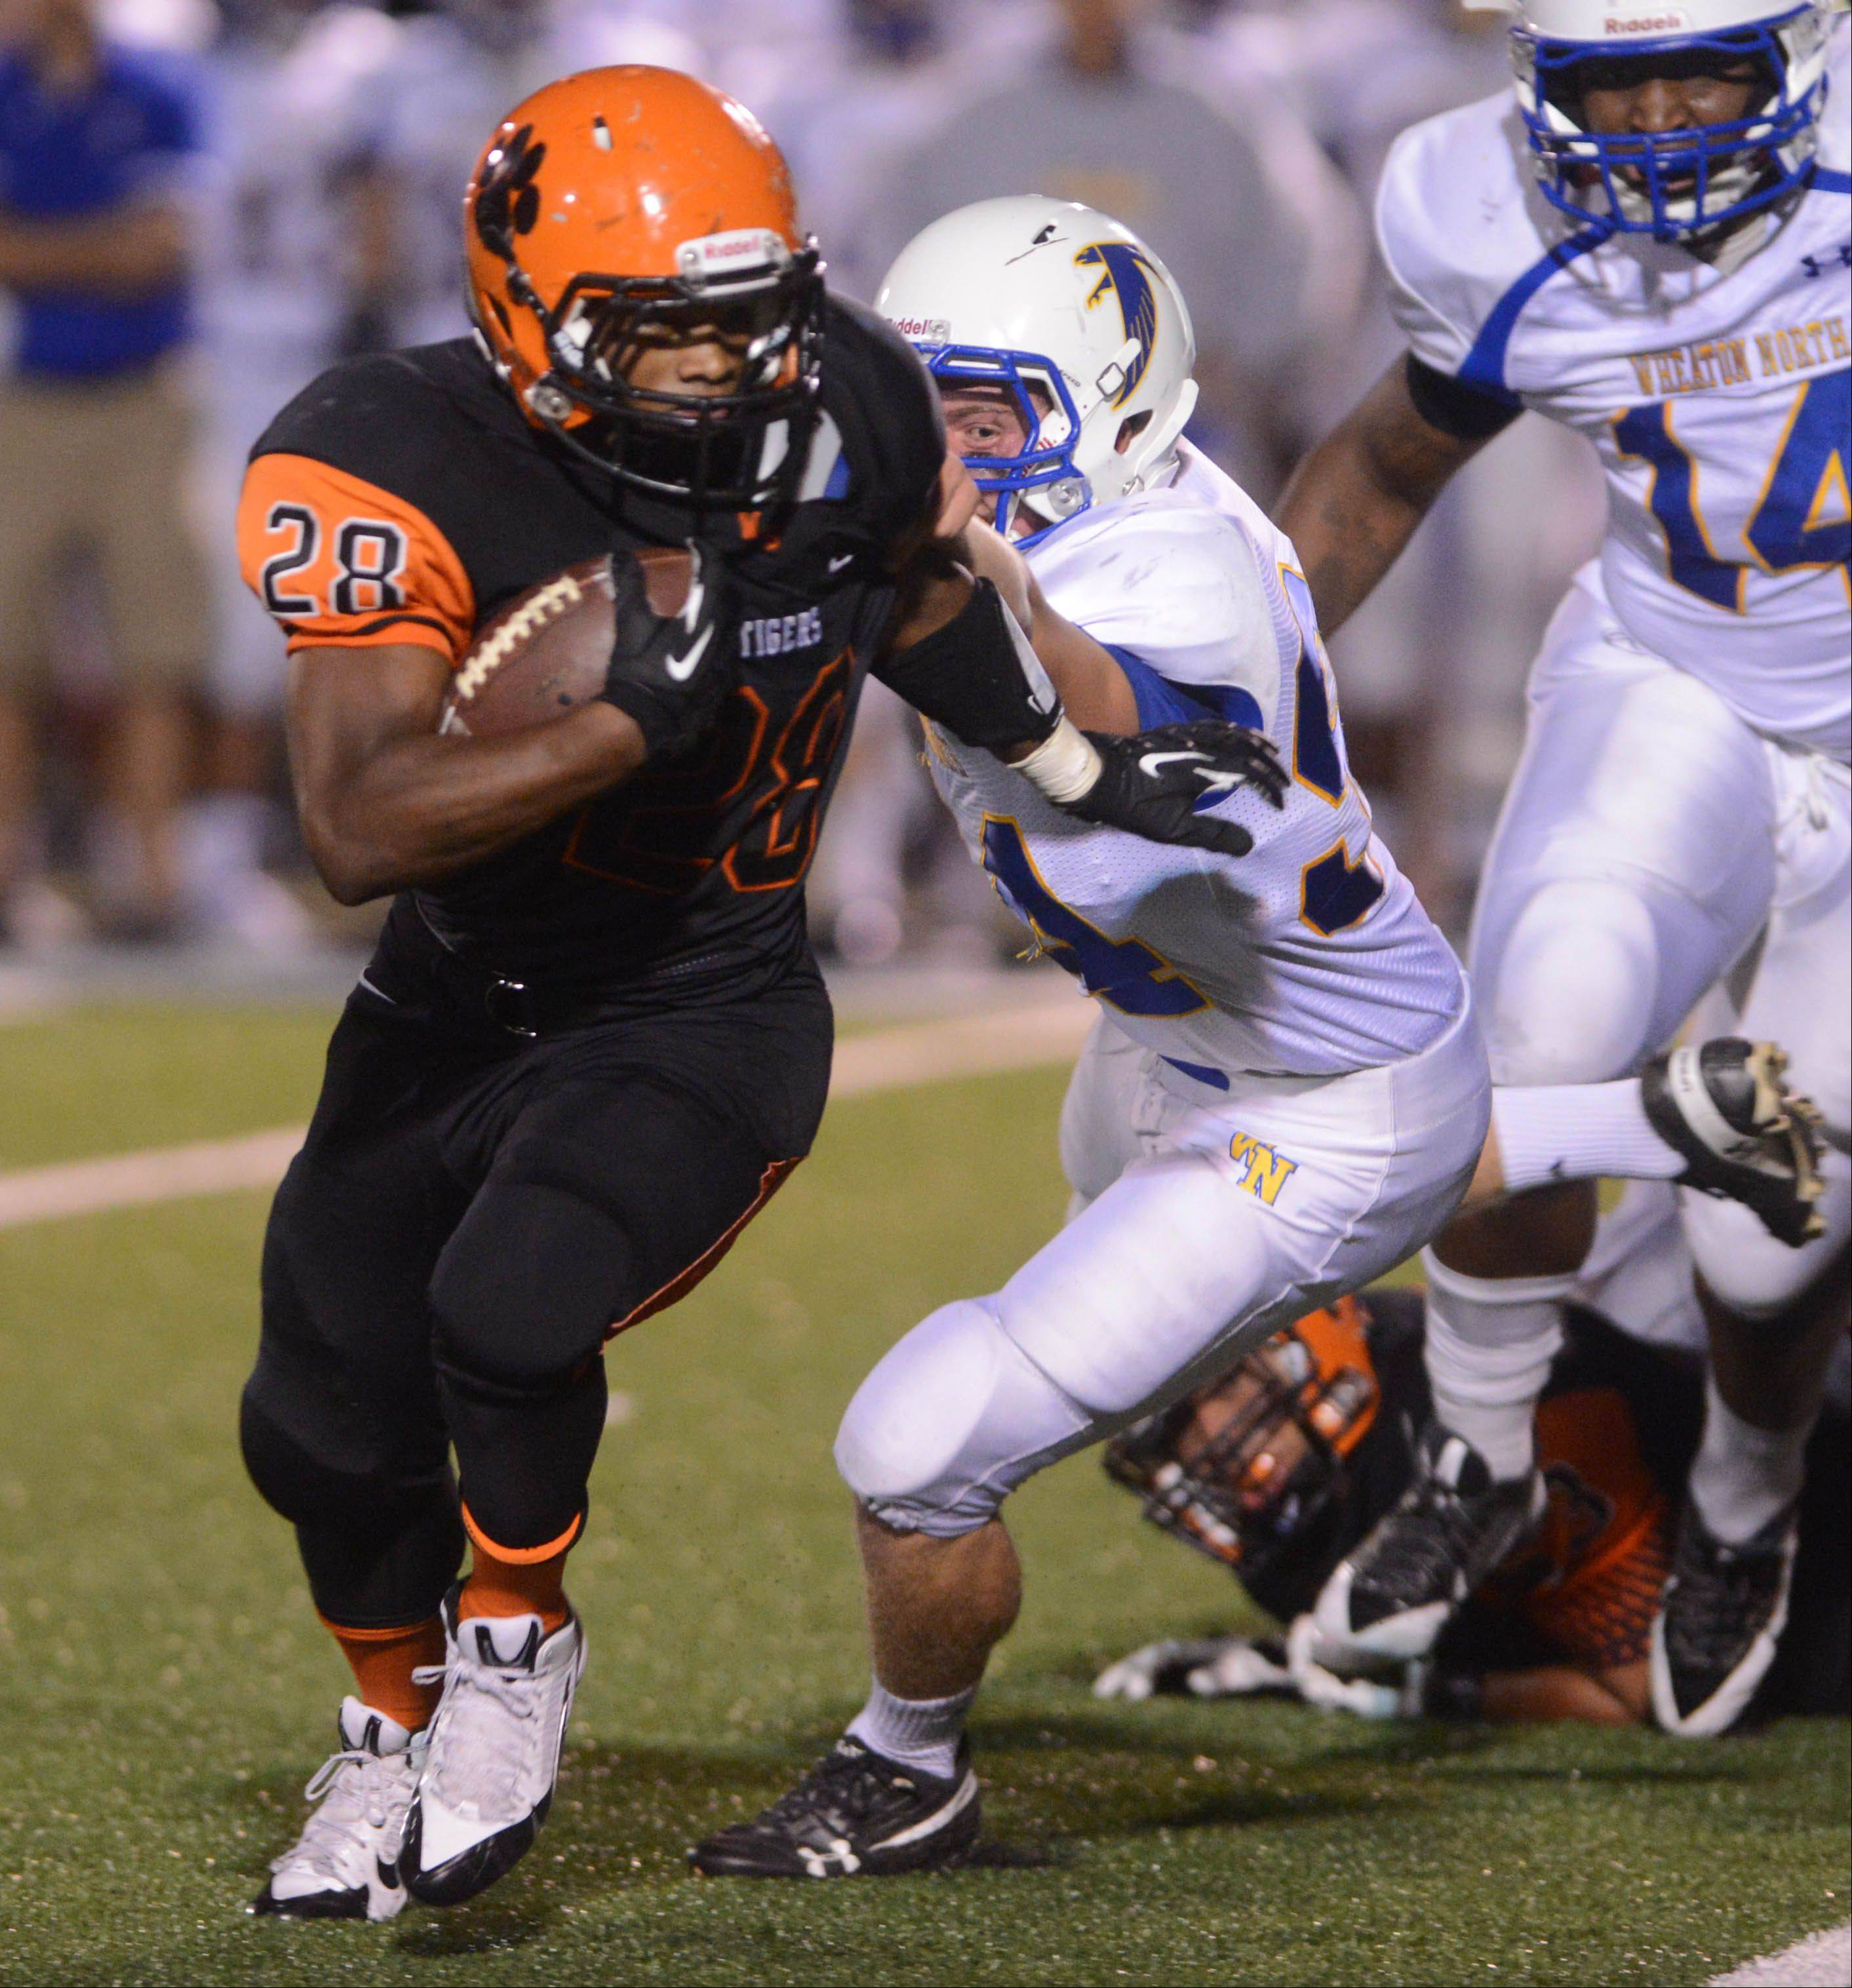 Isaiah Campos of Wheaton Warrenville South out runs a Wheaton North defender during the Wheaton North at Wheaton Warrenville South football game Friday.